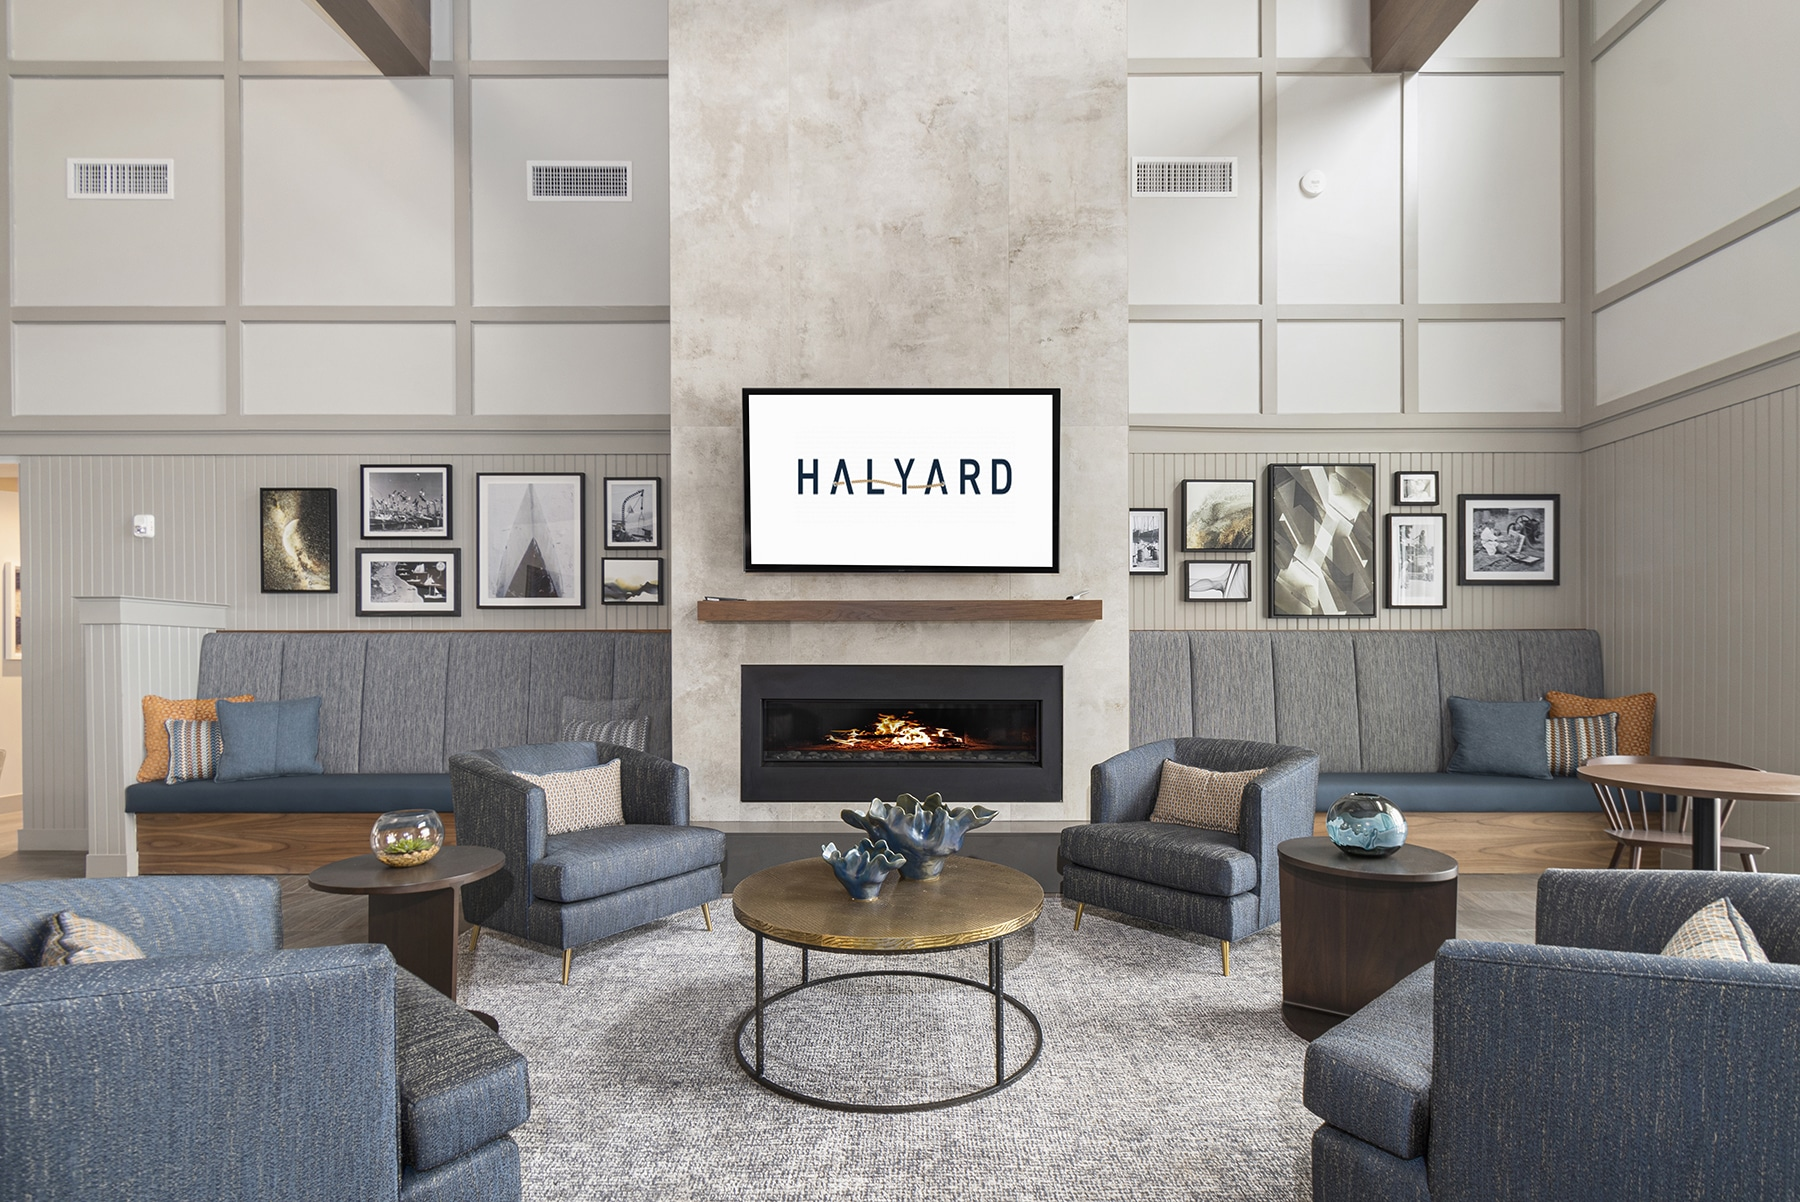 Halyard Apartments, managed by Dolben, in Gloucester, Massachusetts